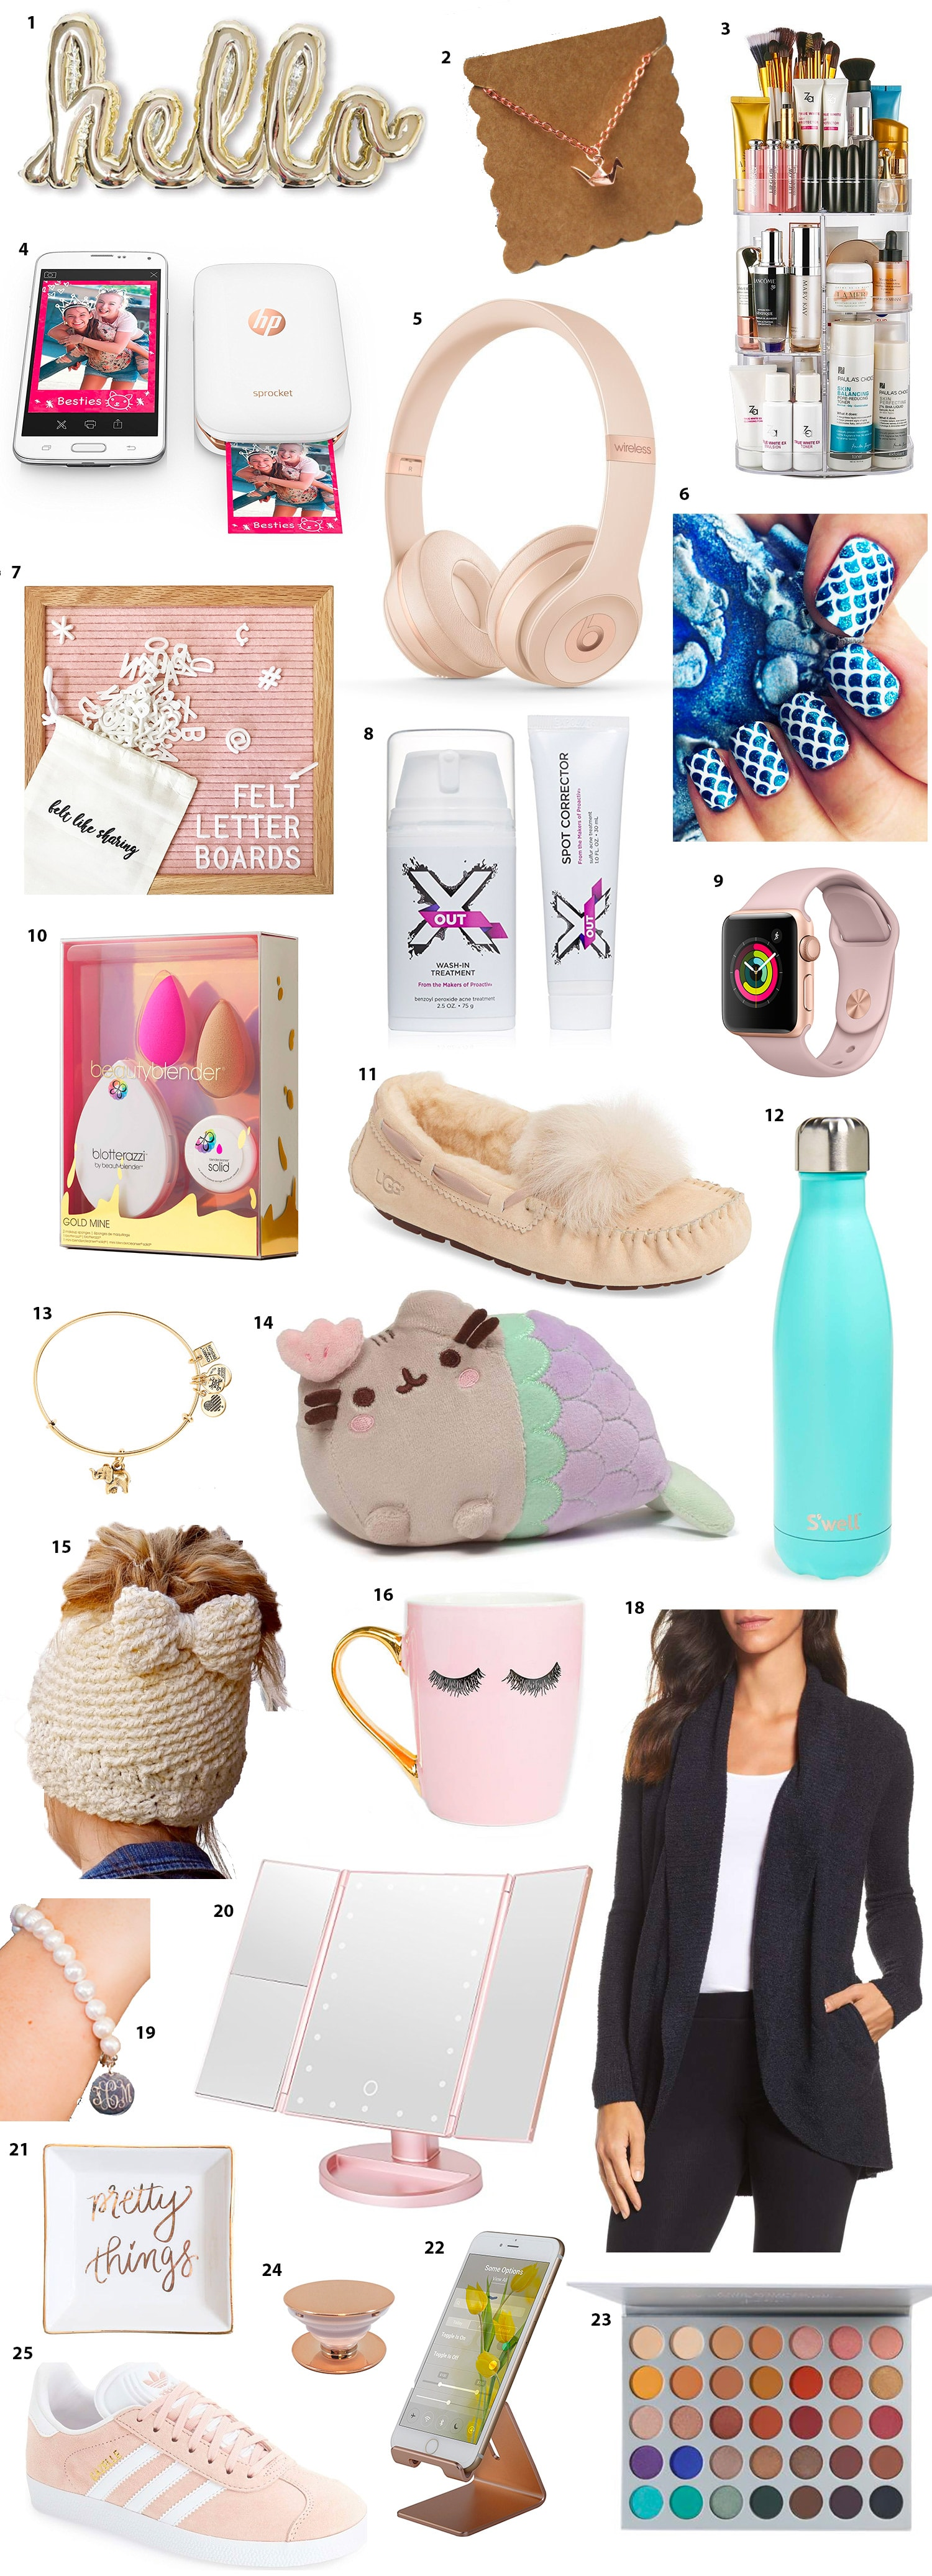 The Best Christmas Gifts for Teens